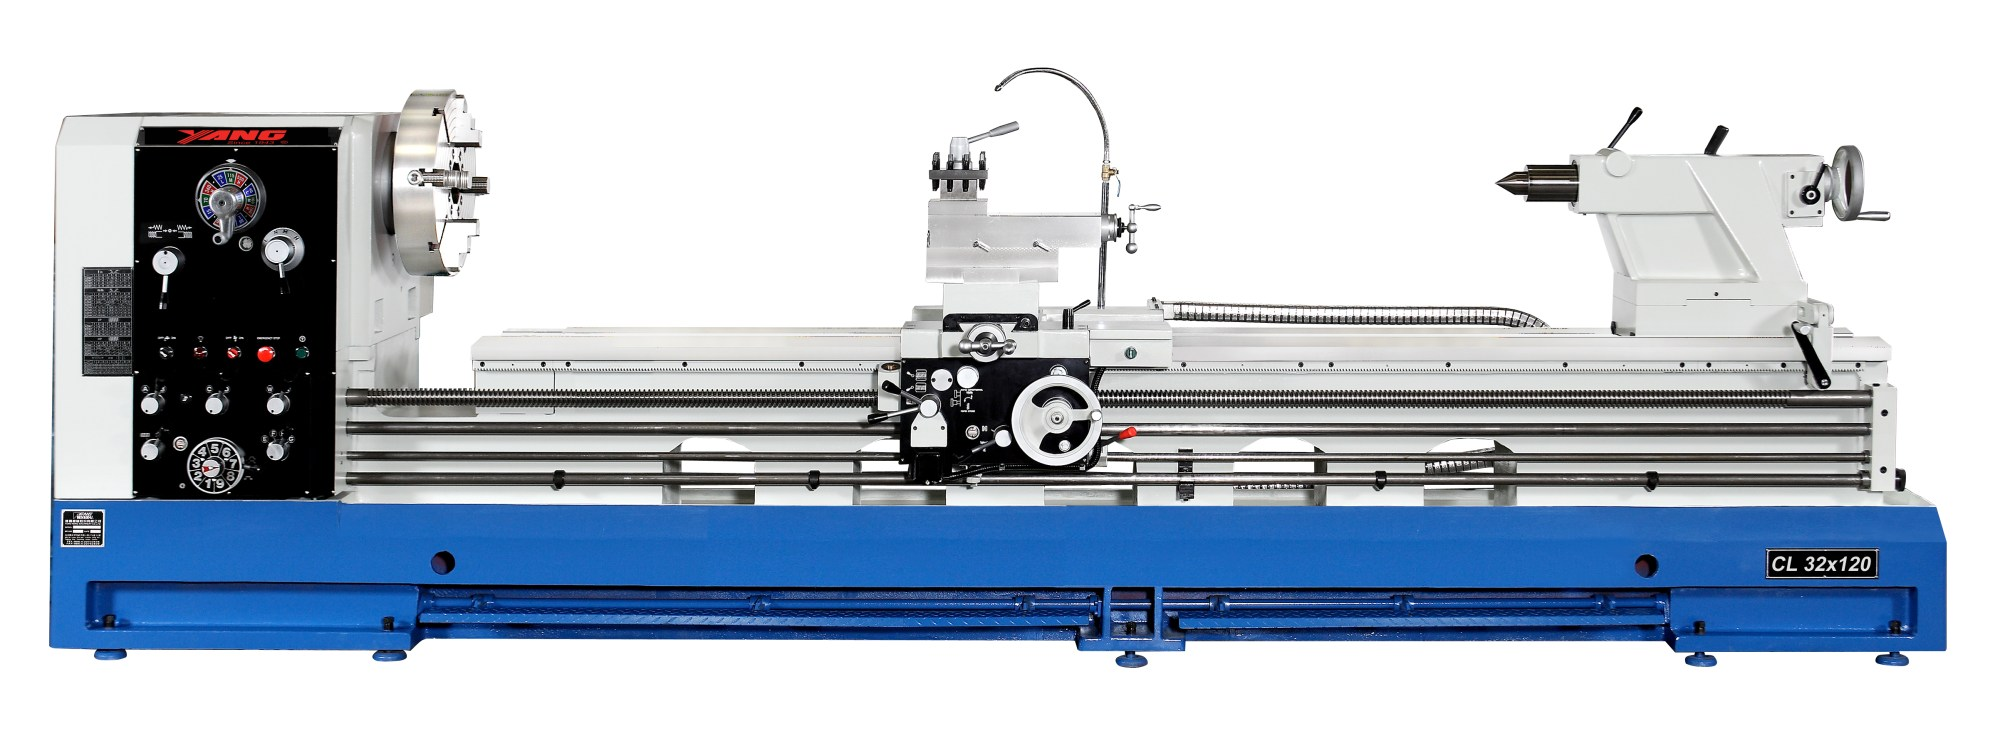 hight resolution of high speed engine lathes